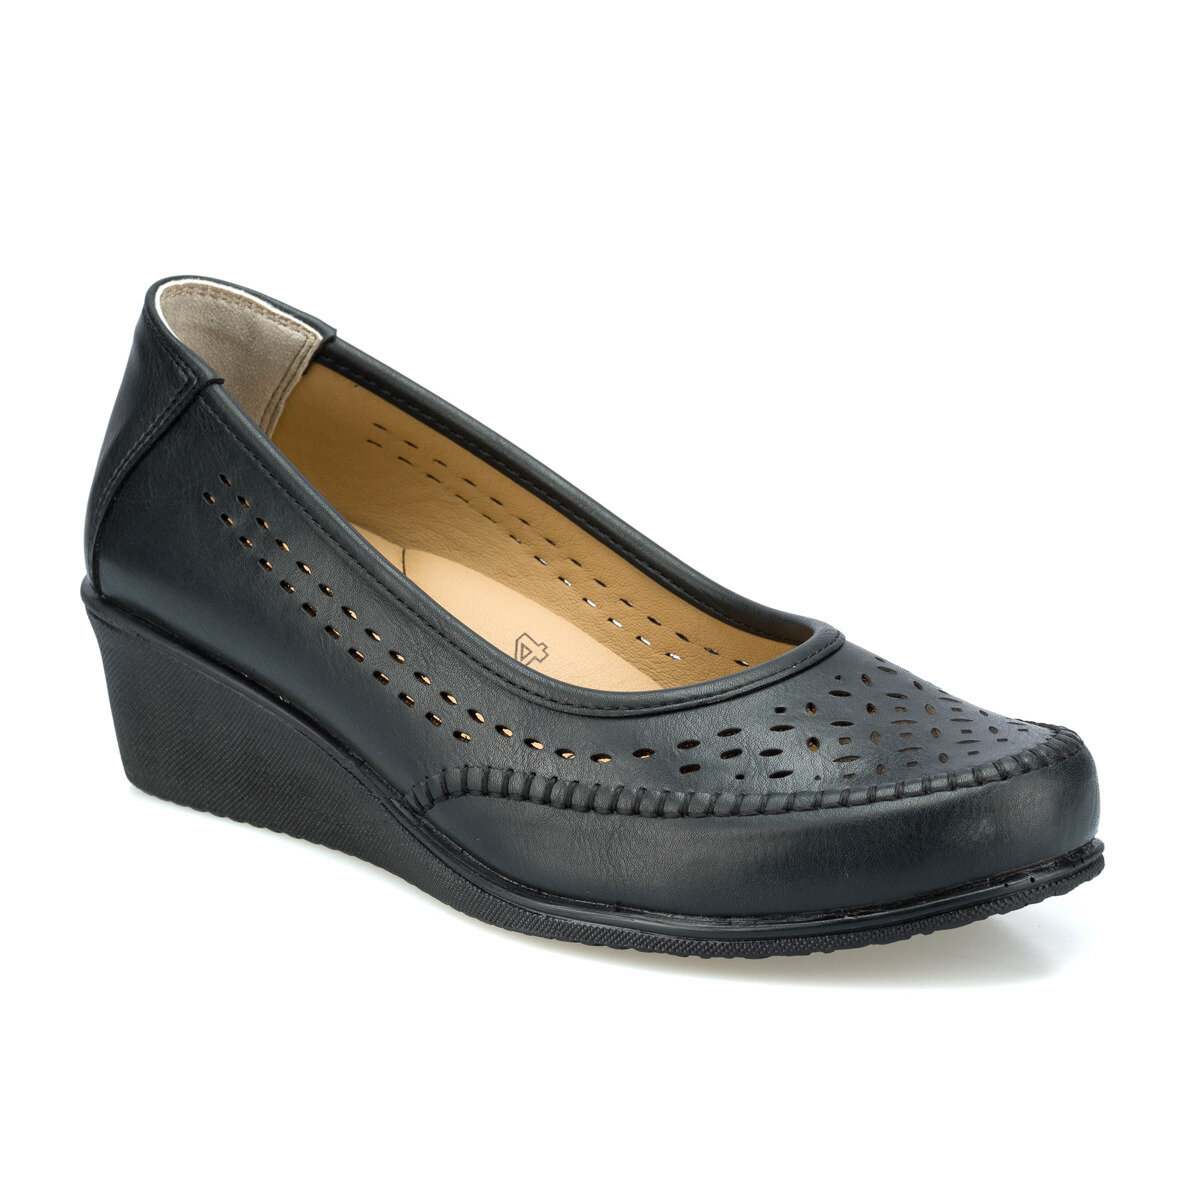 FLO 103049.Z Black Women Shoes Polaris 5 Point